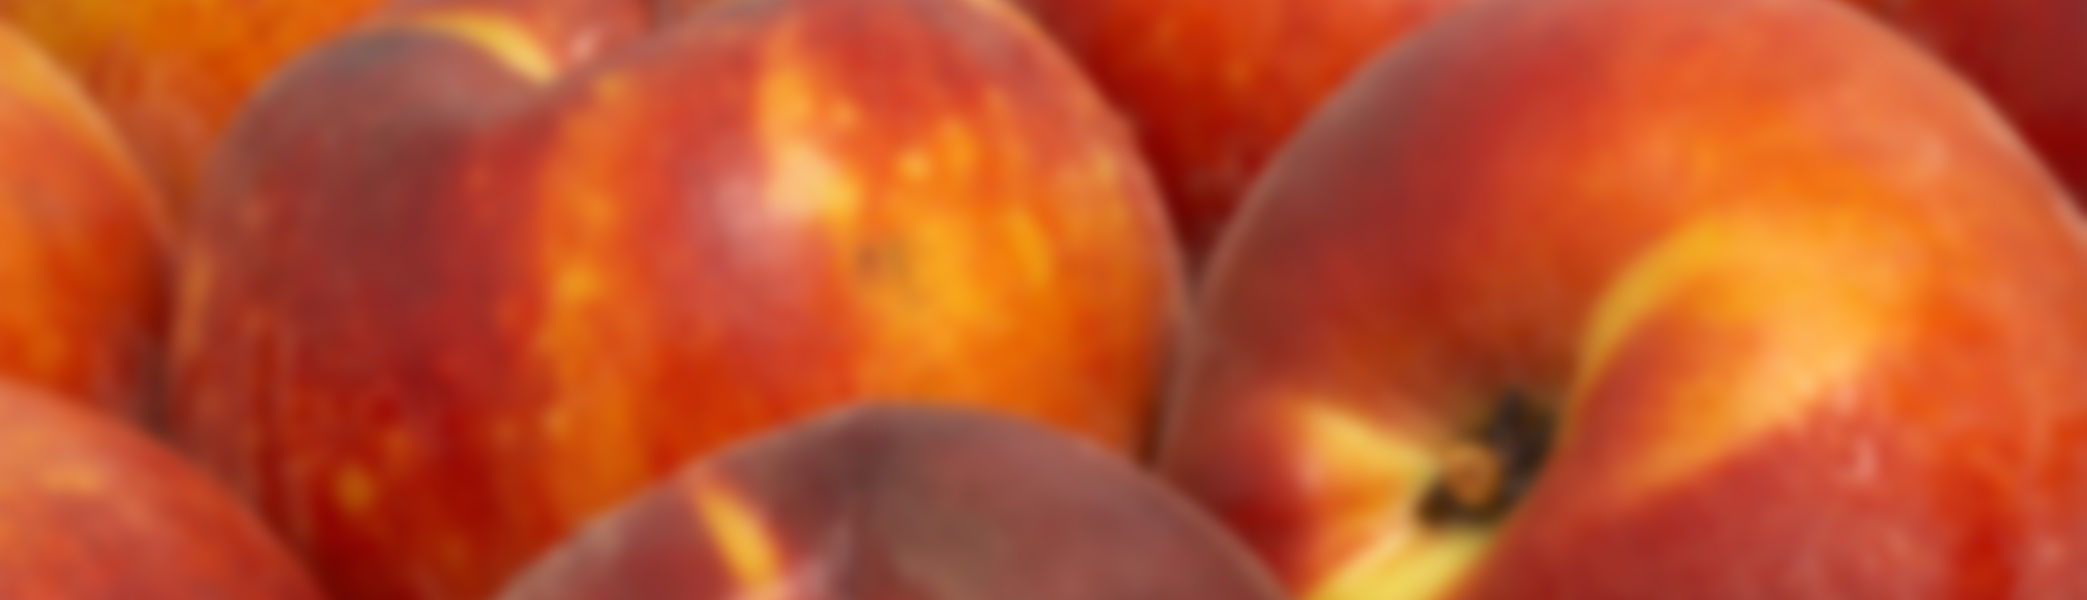 5 Facts About Peaches You Should Know